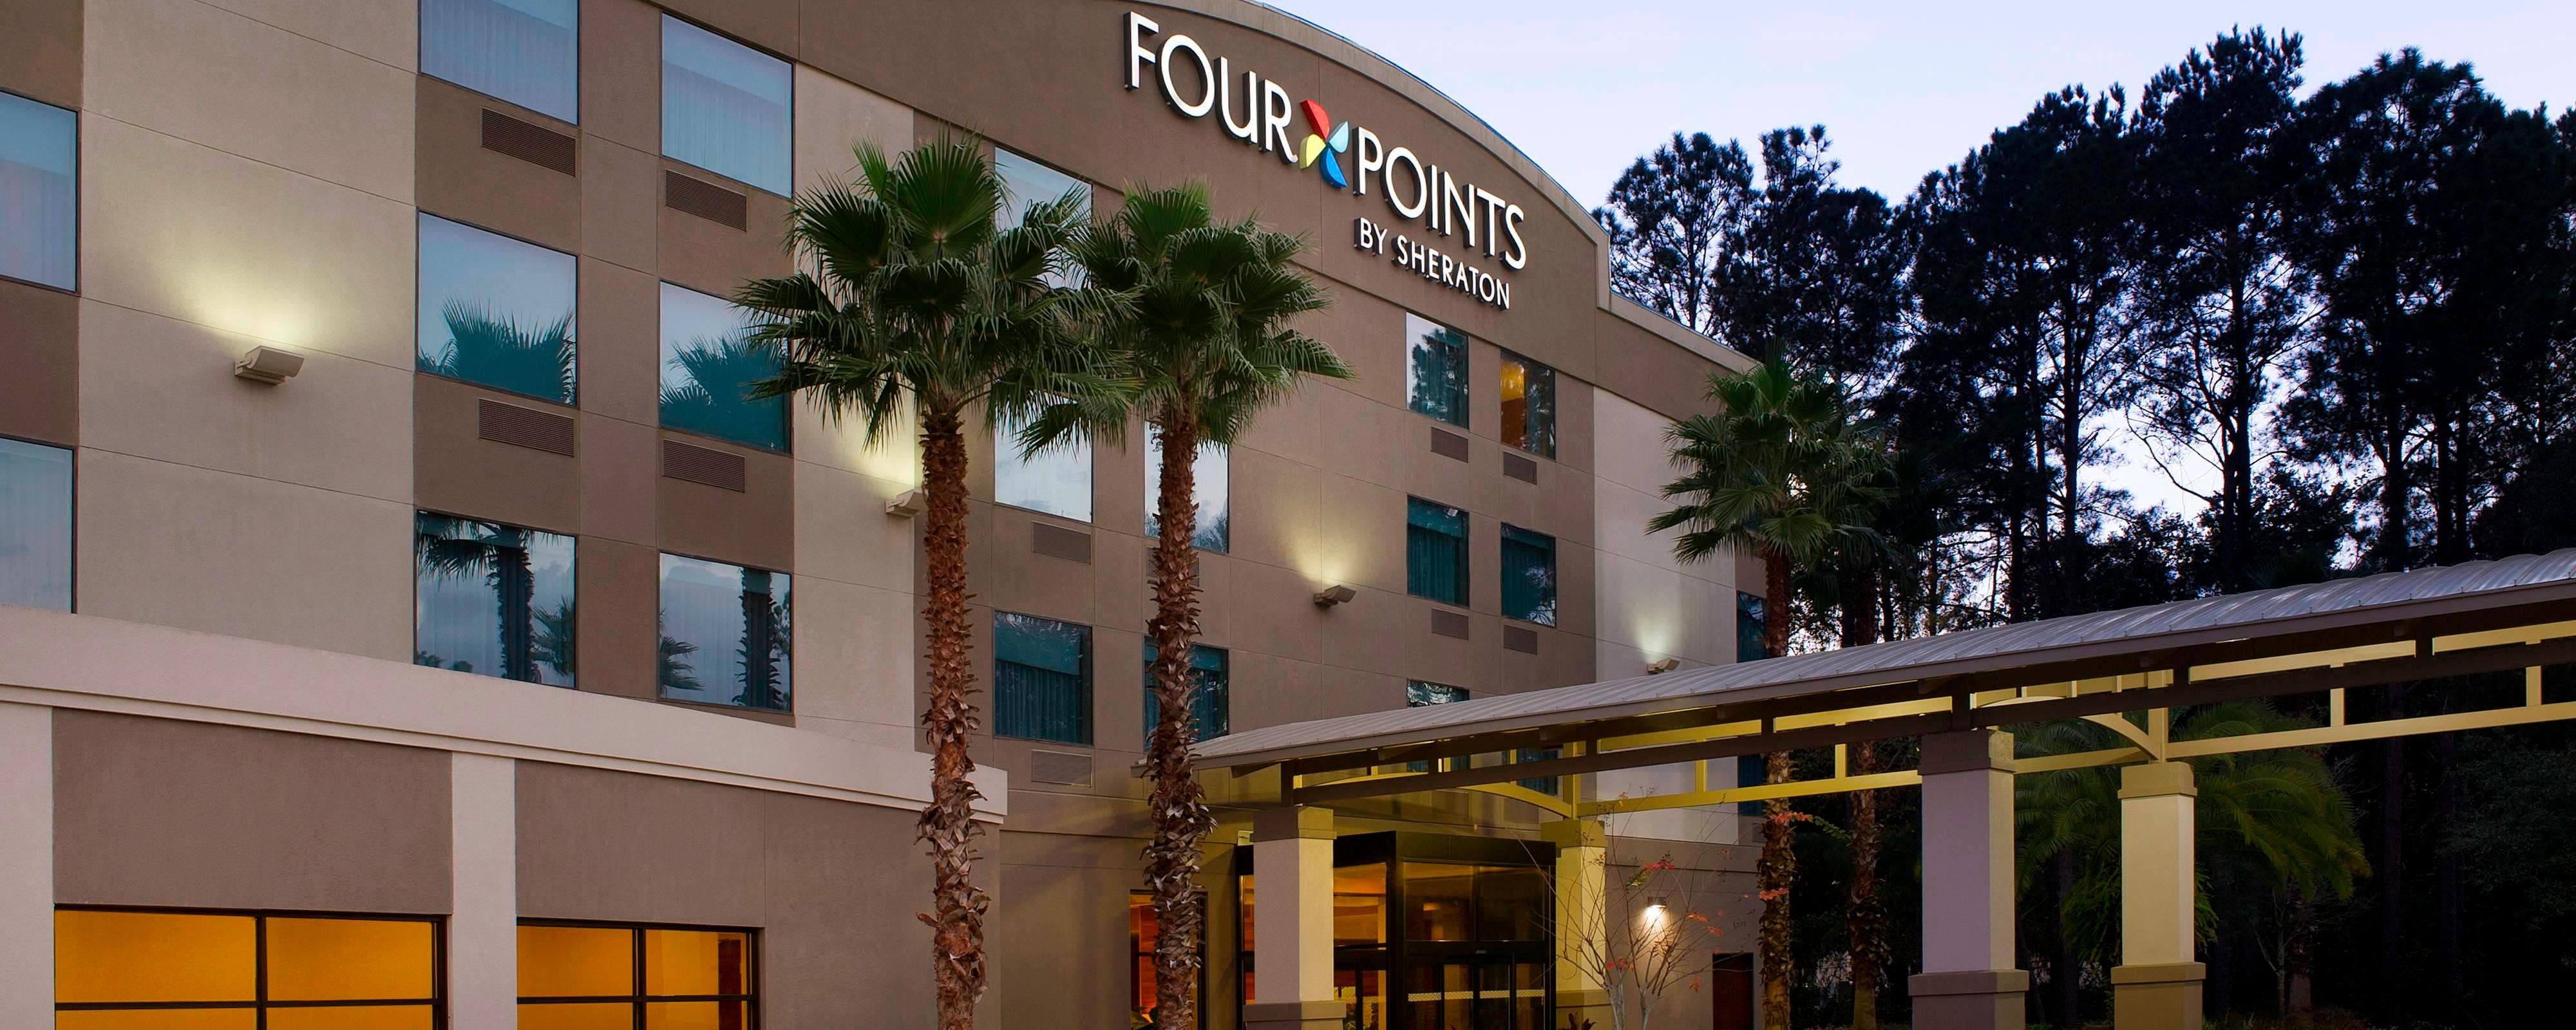 Hotel On Baymeadows Four Points By Sheraton Jacksonville Baymeadows